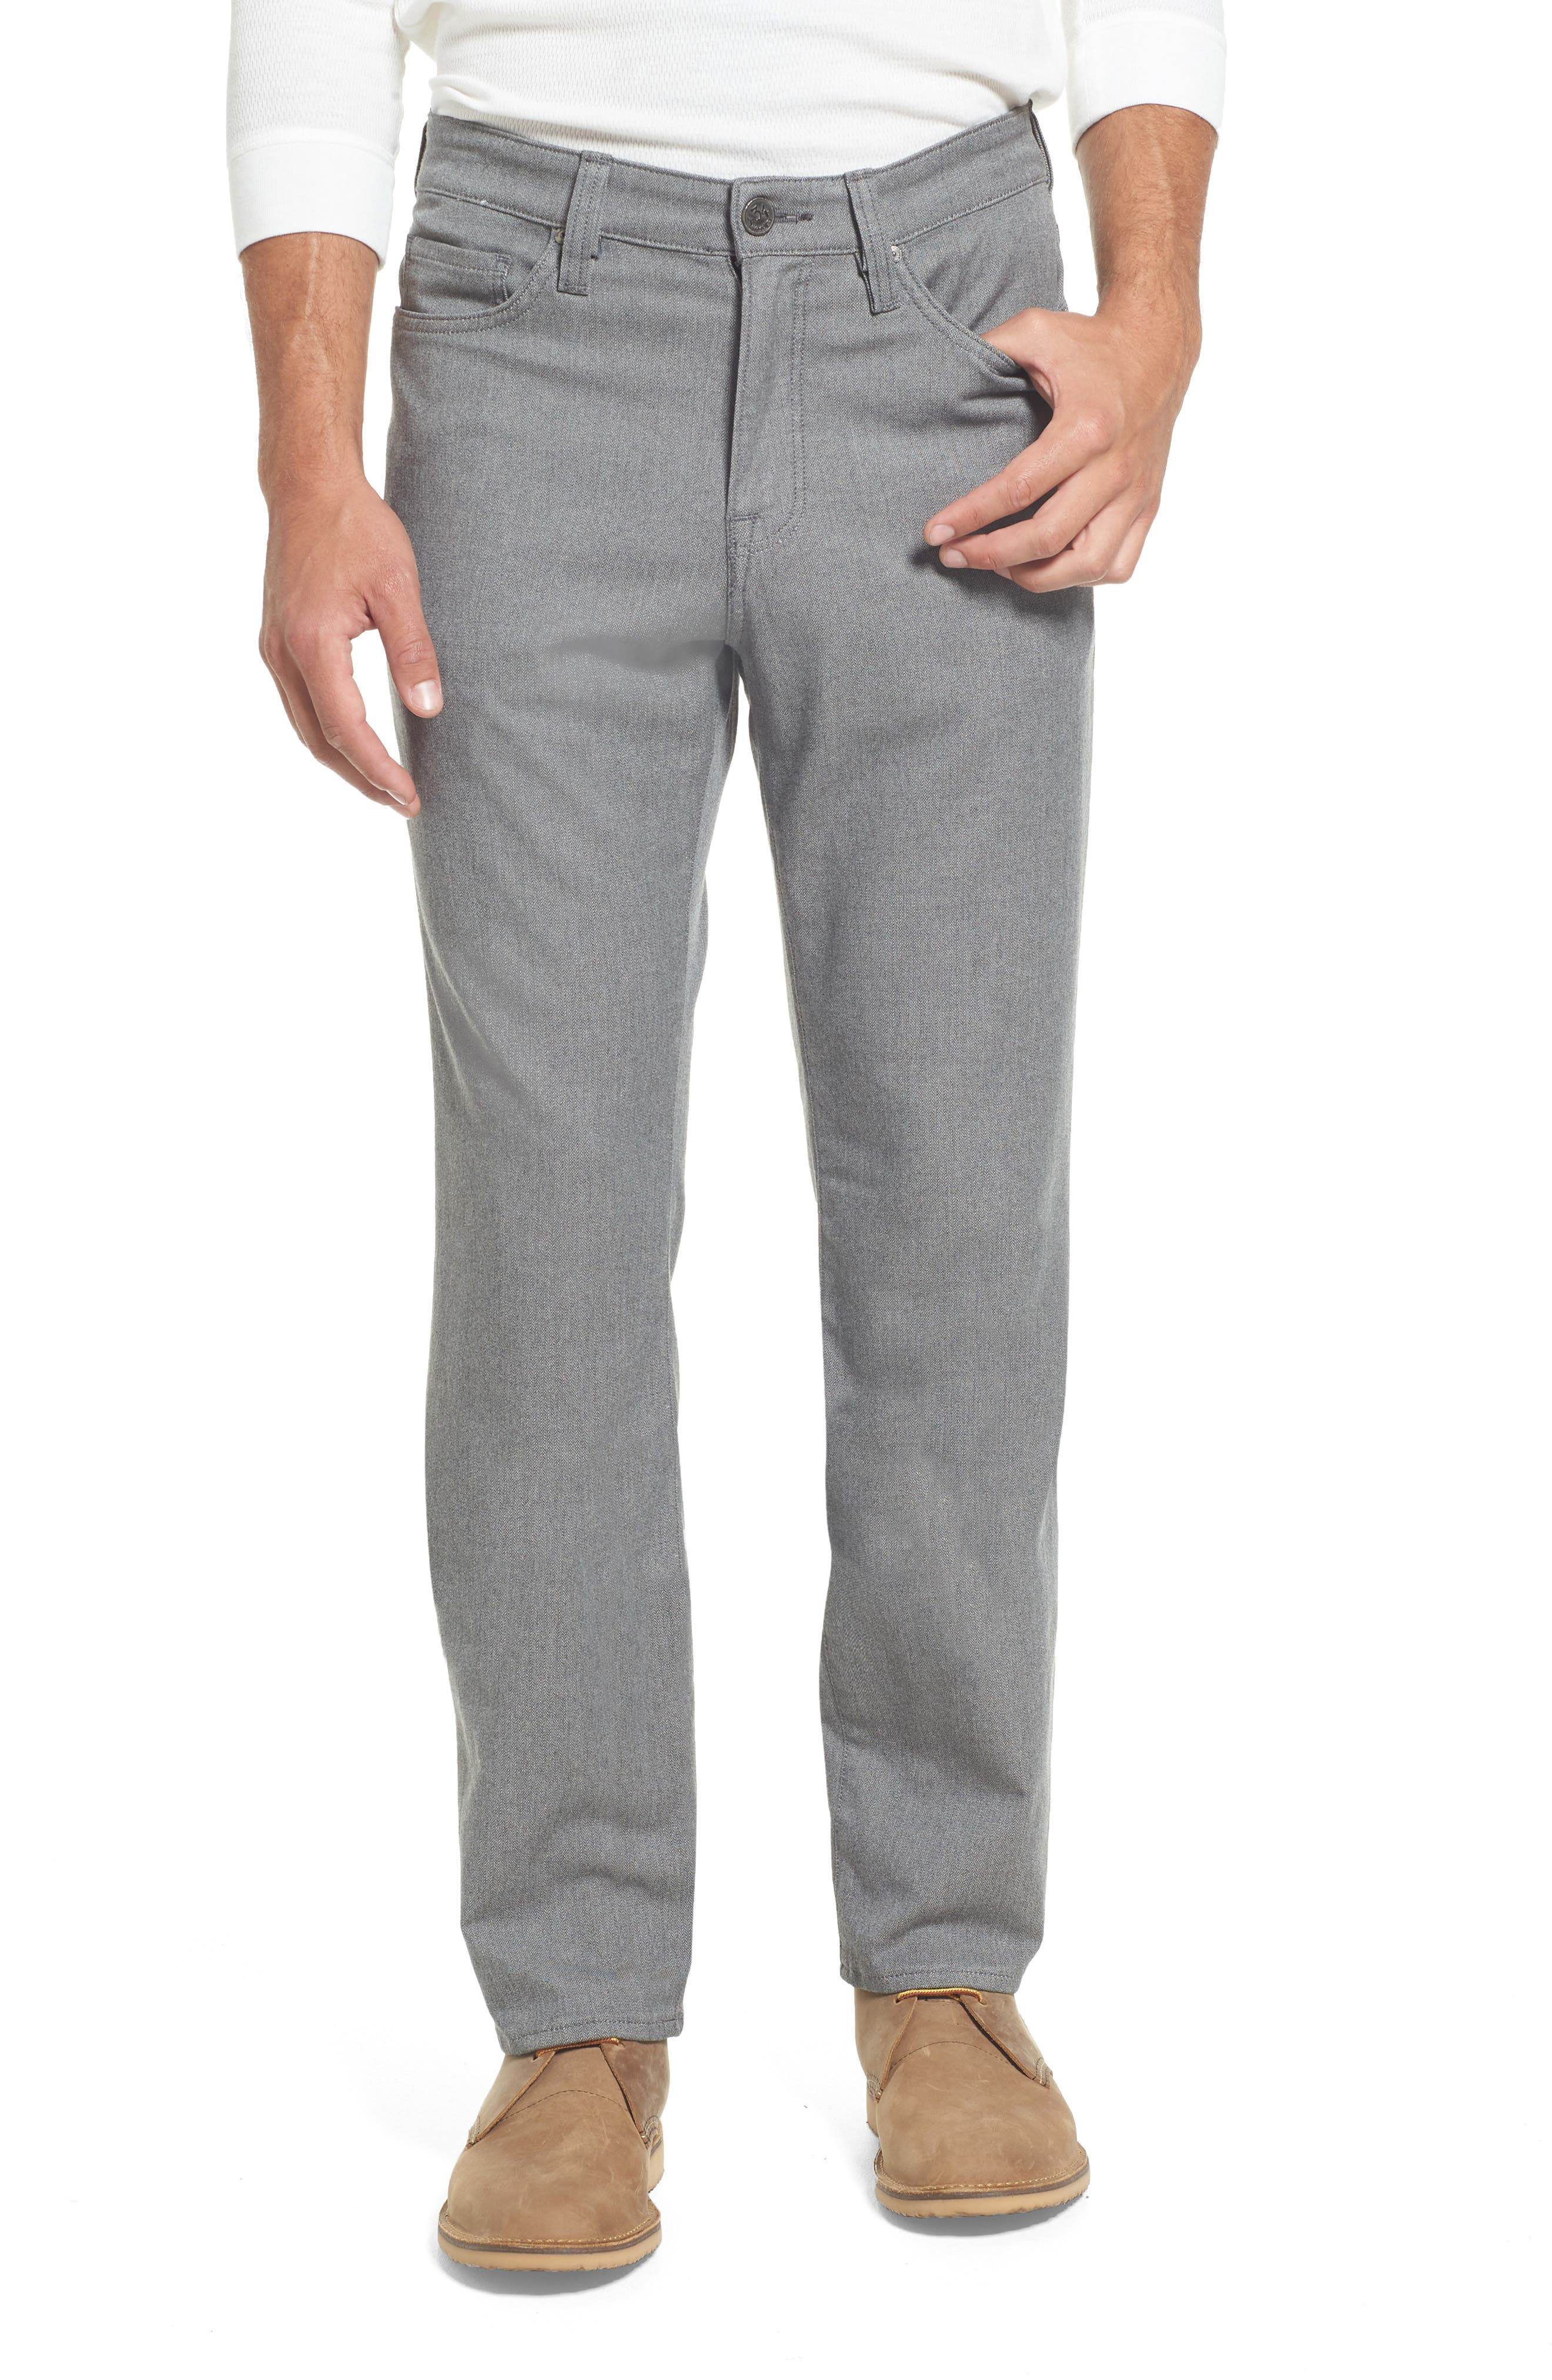 Main Image - 34 Heritage Charisma Relaxed Fit Jeans (Grey Winter Twill)